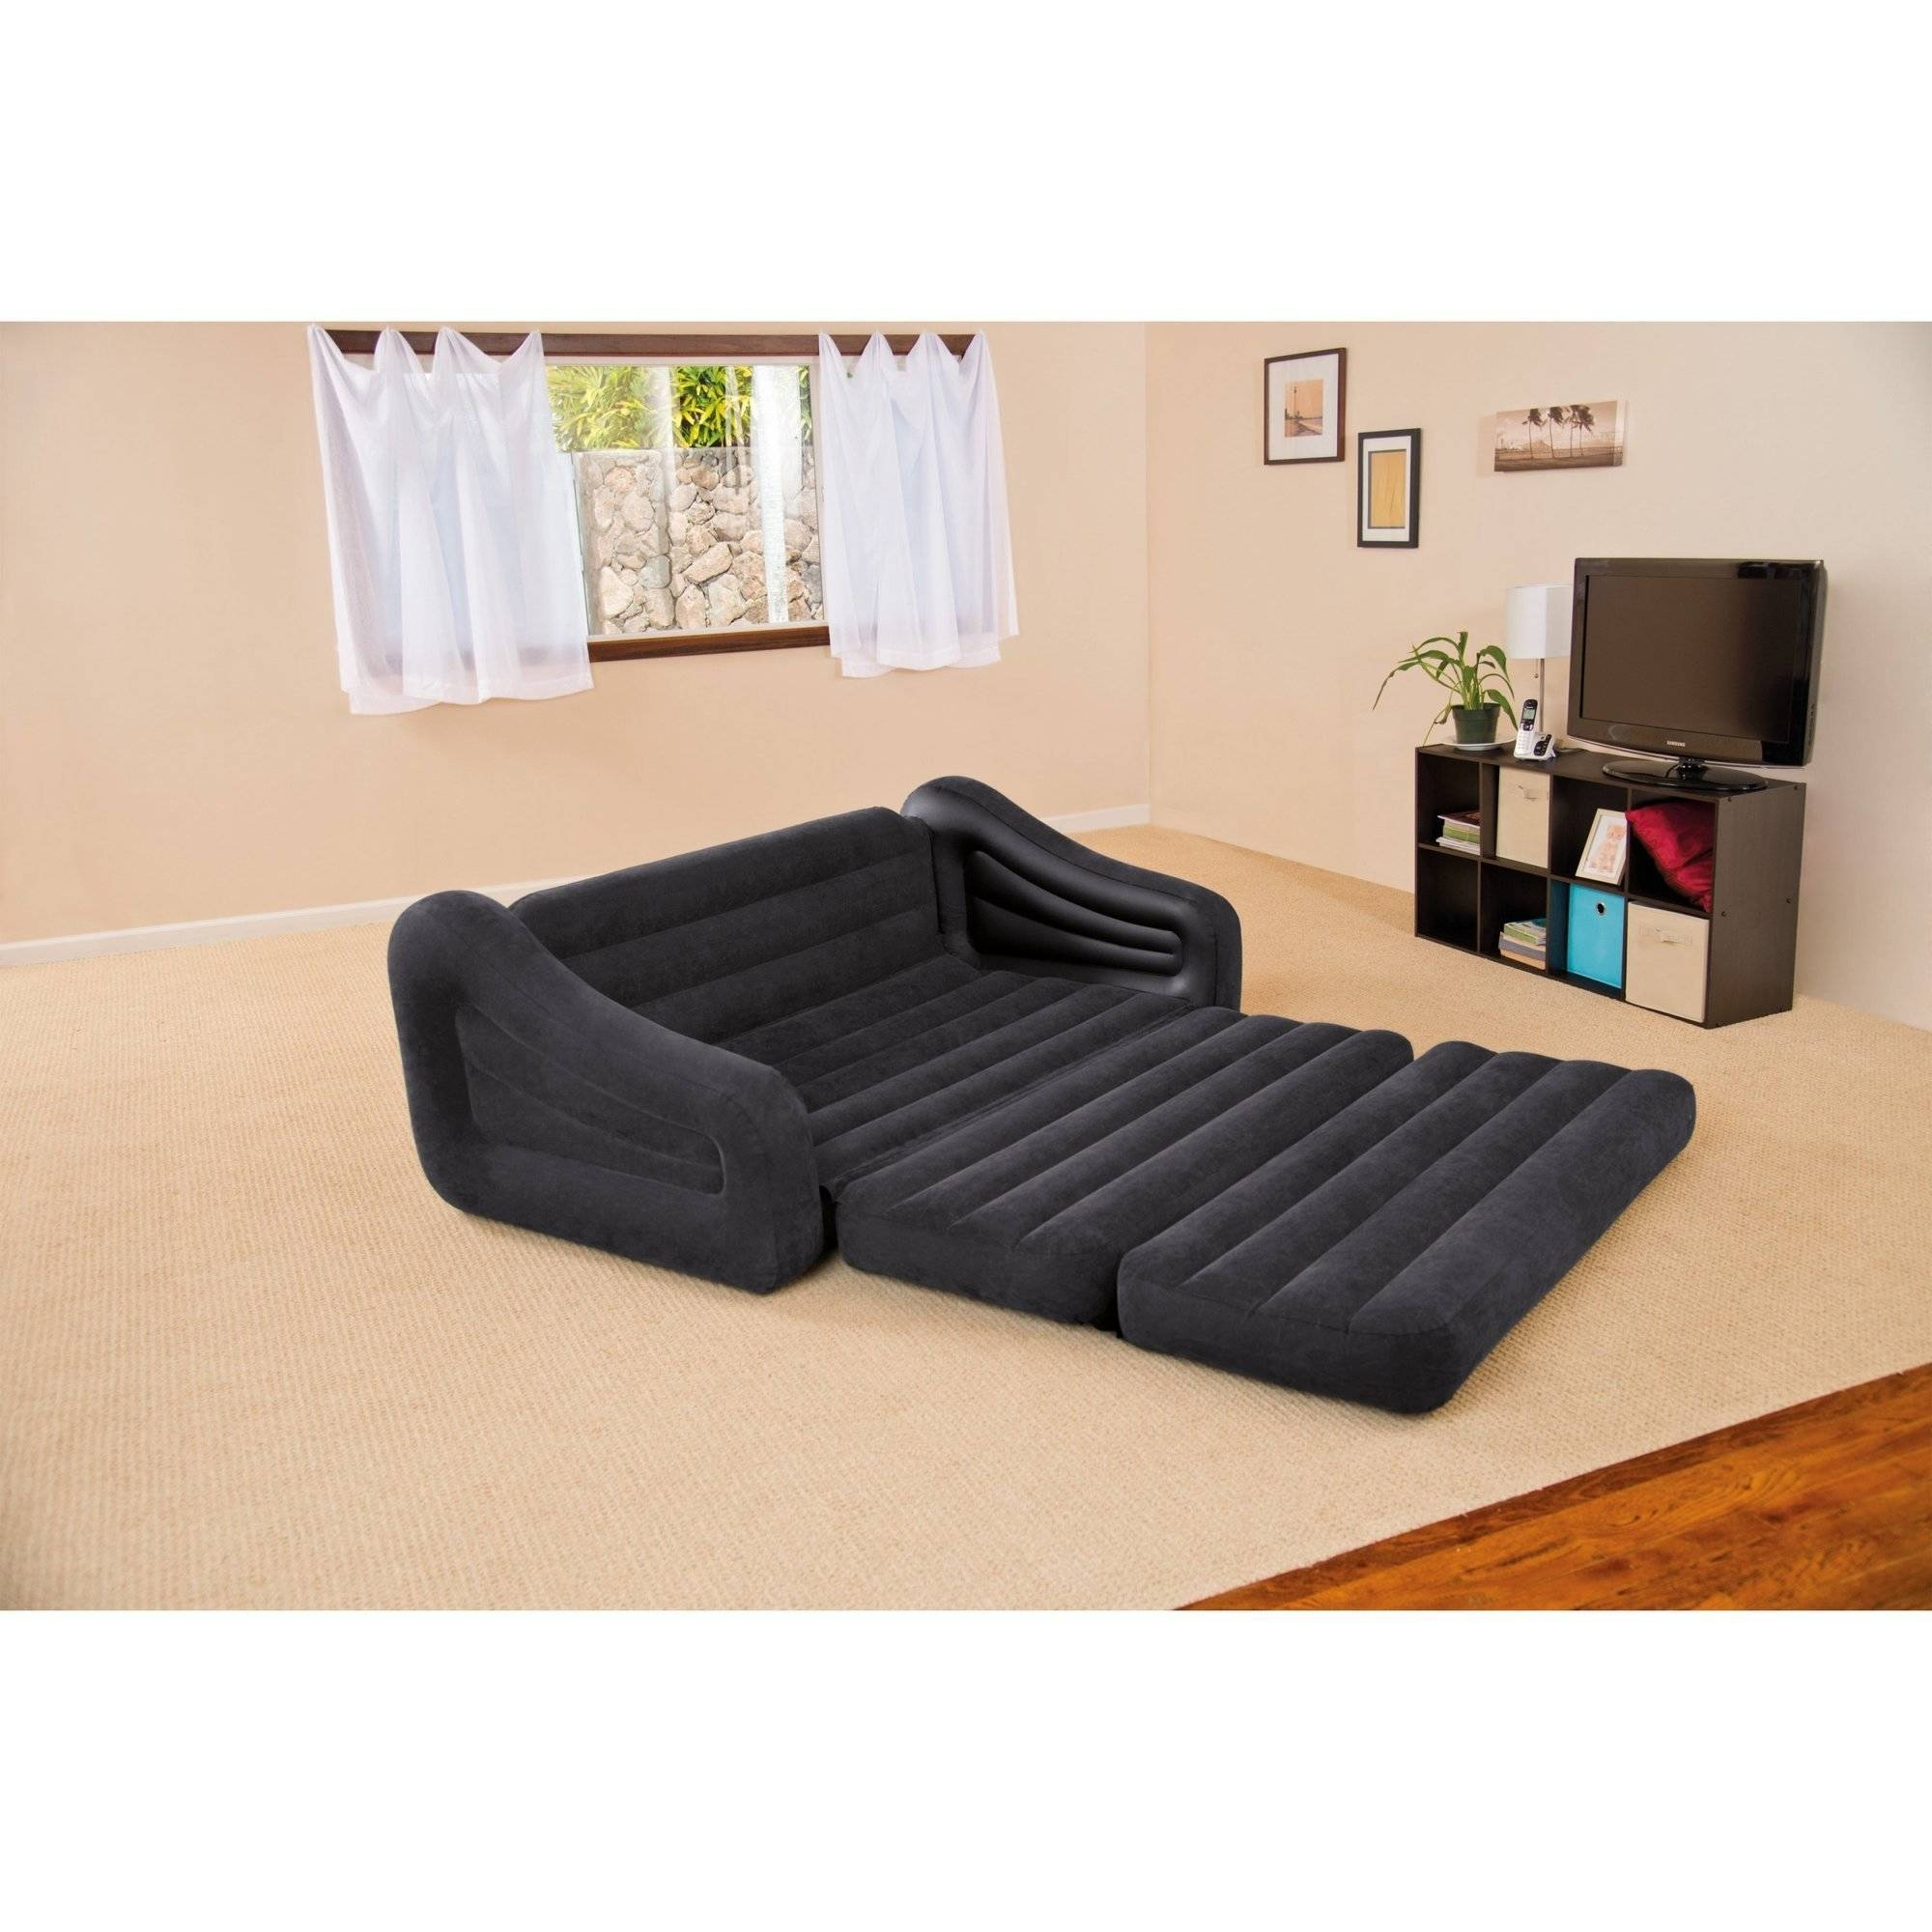 Intex Queen Inflatable Pull Out Sofa Bed - Walmart for Inflatable Sofa Beds Mattress (Image 11 of 15)